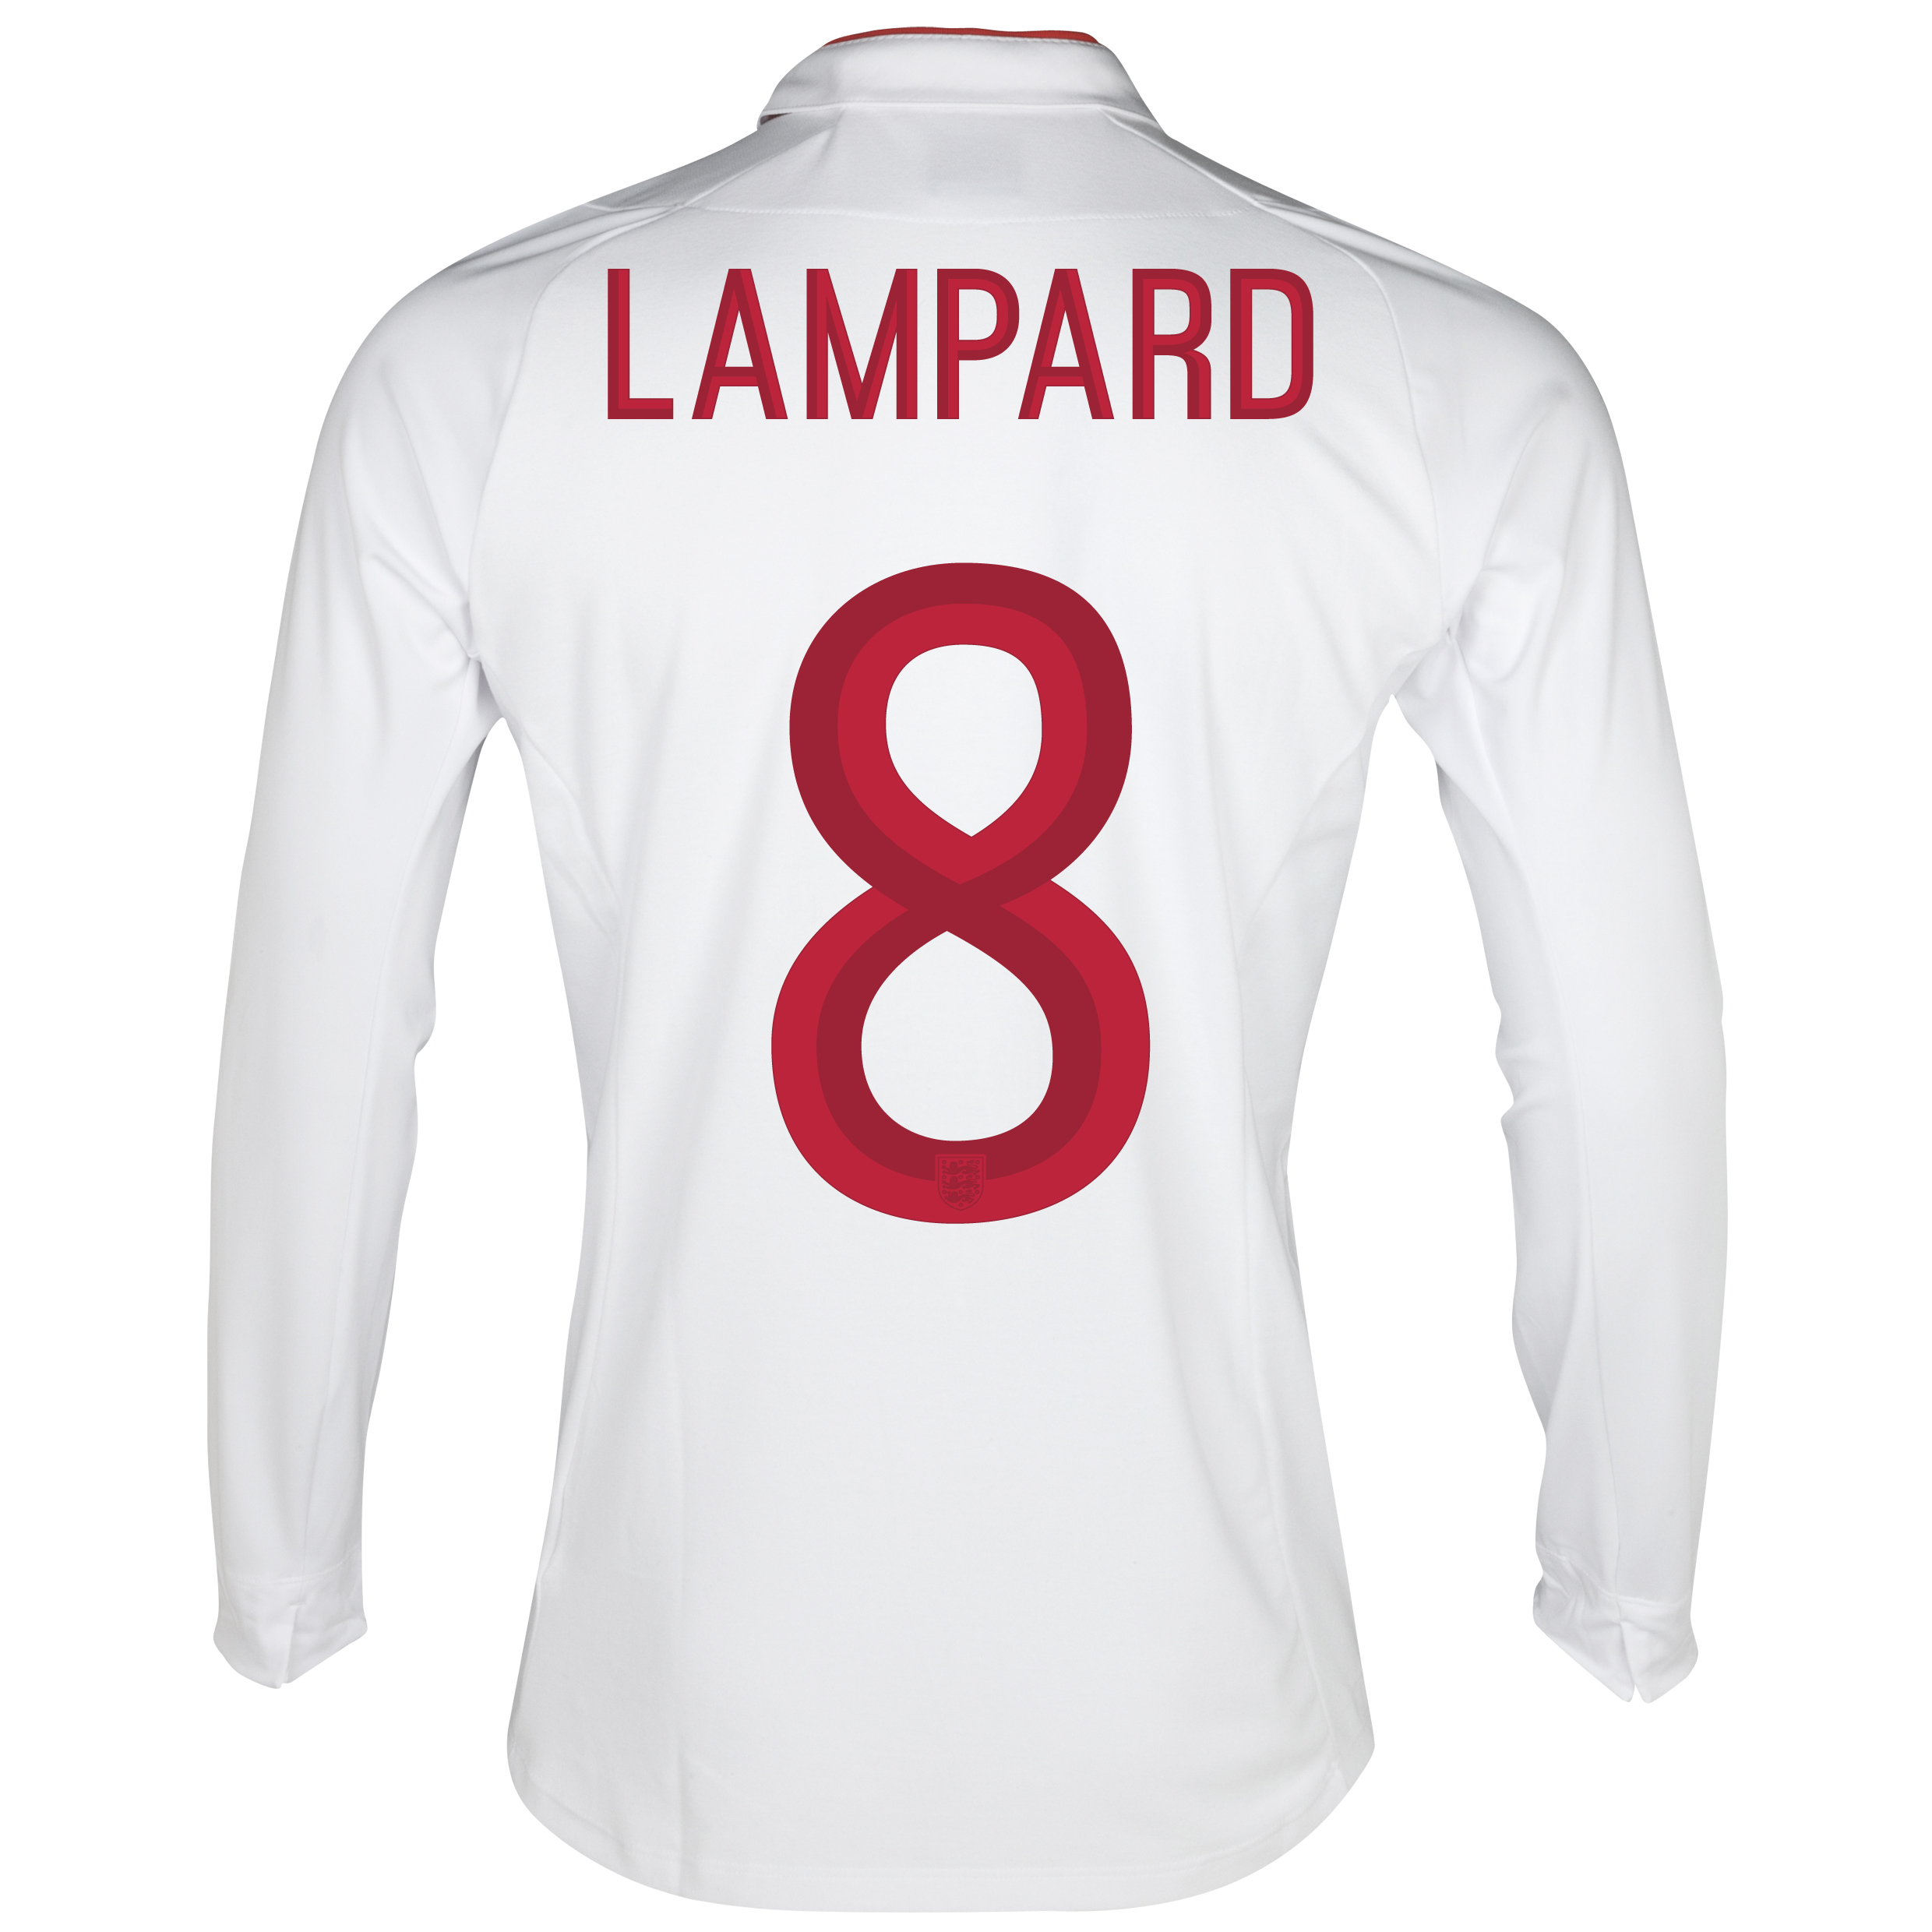 England Home Shirt 2012/13 - Long Sleeve - Boys with Lampard 8 printing